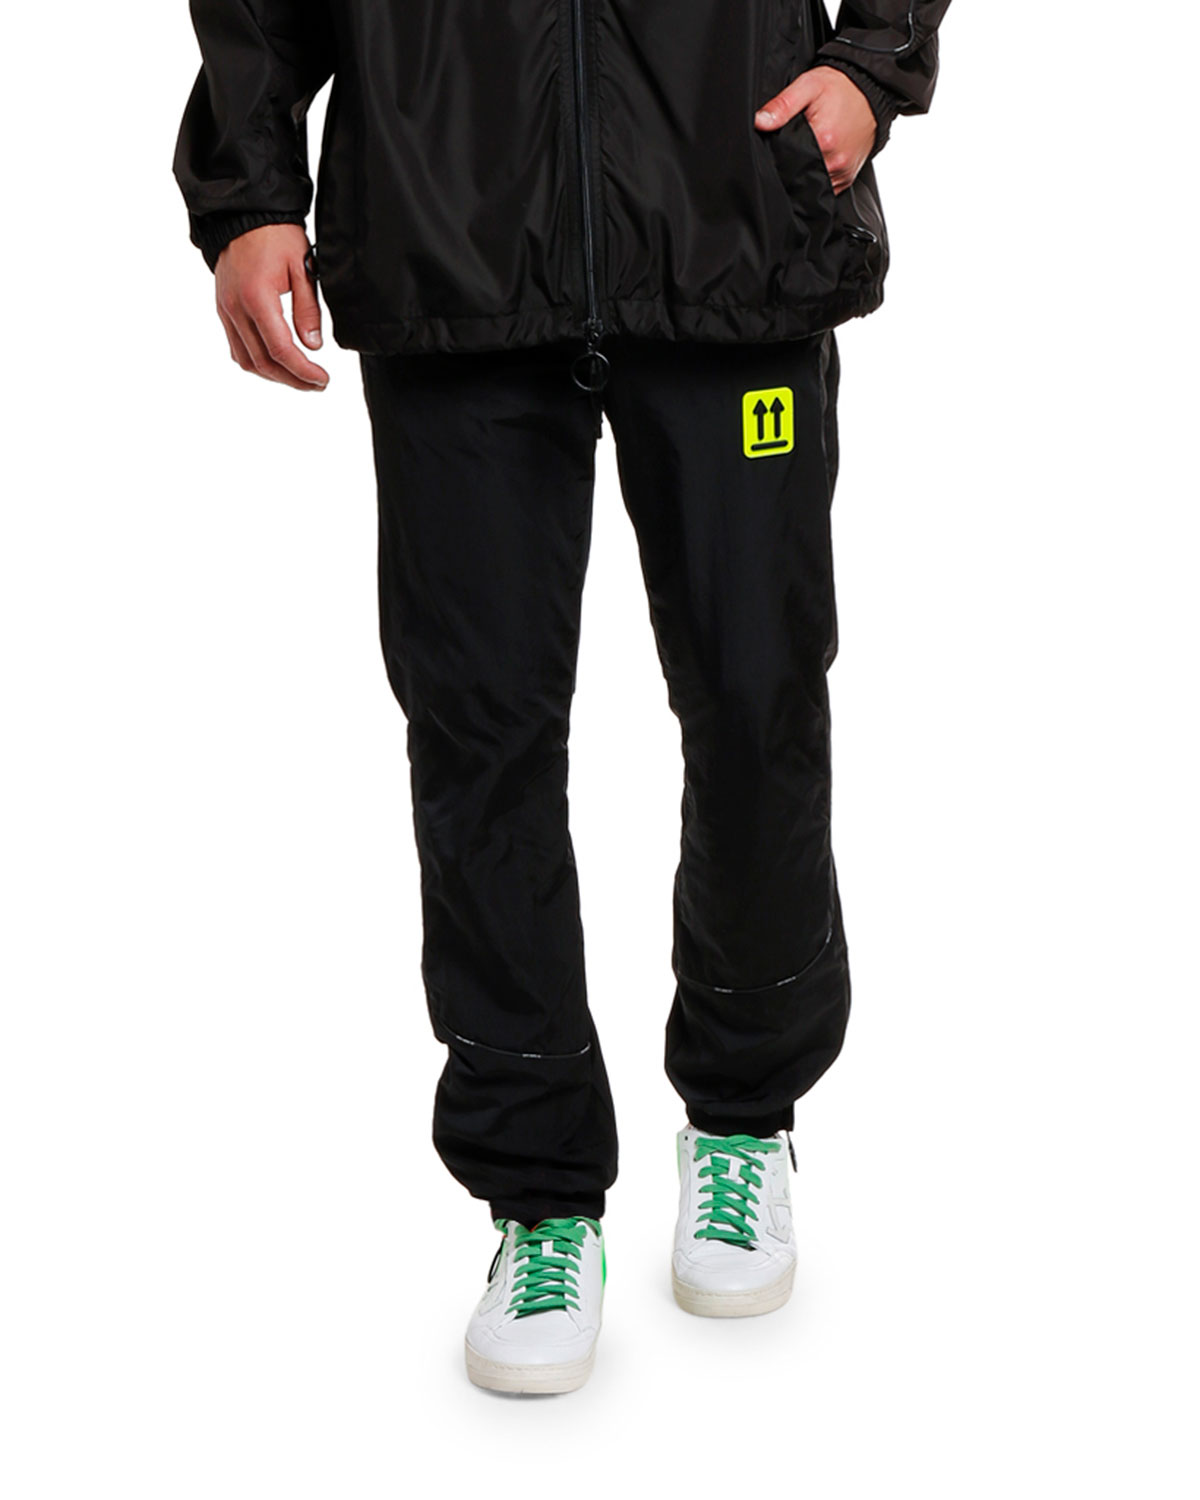 Off-White Loungewears MEN'S RIVER TRAIL TRACK PANTS